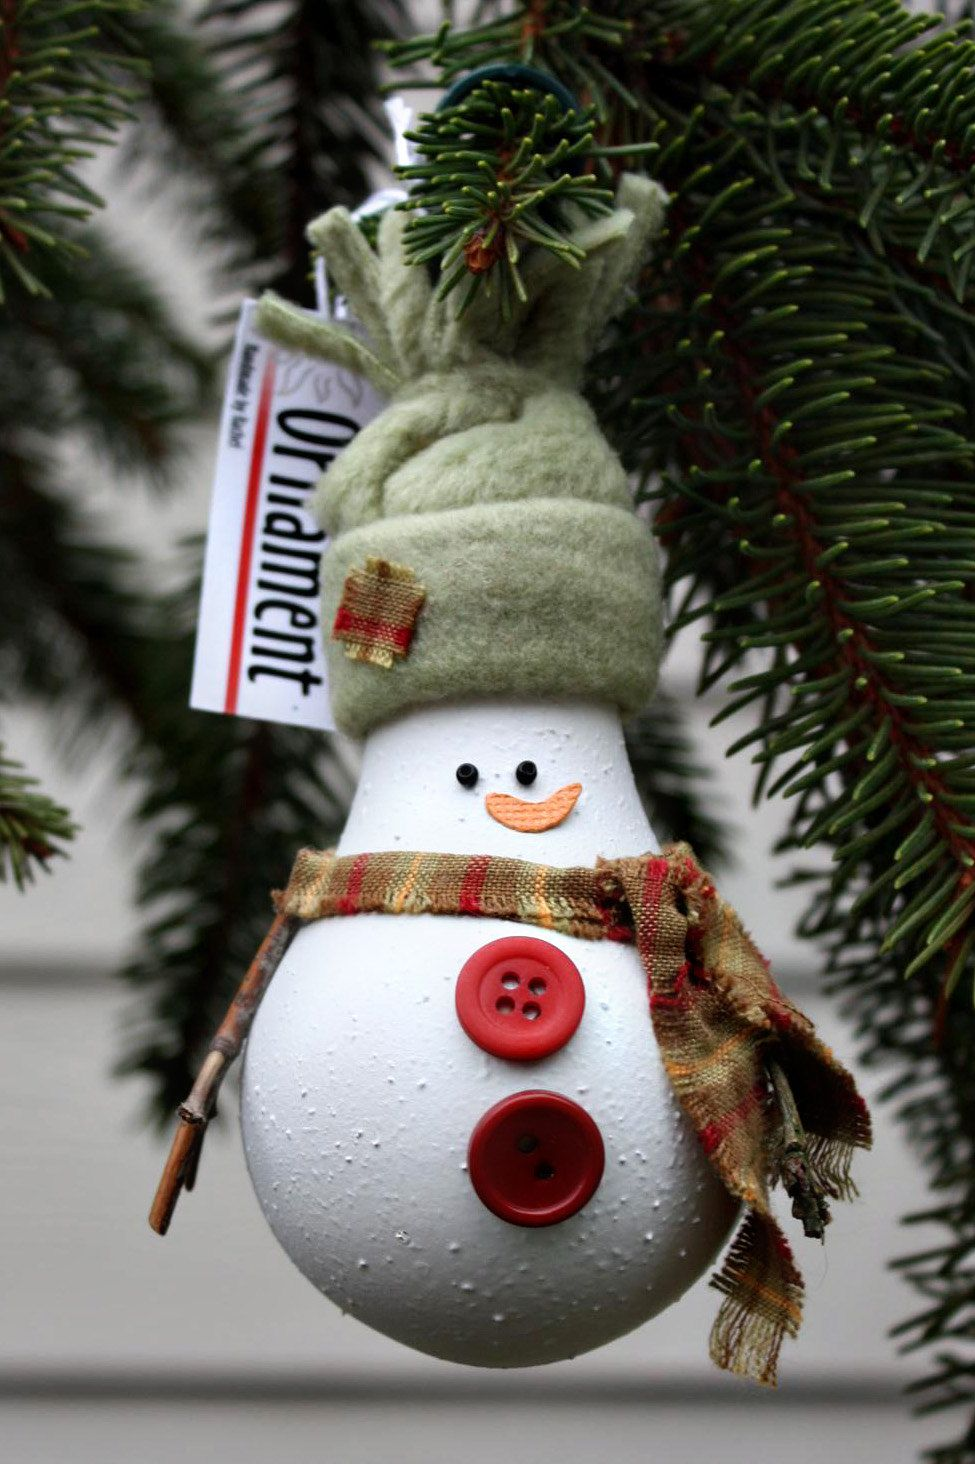 Snowman Christmas Tree Ornament - made from a recycled lightbulb for sale on etsy